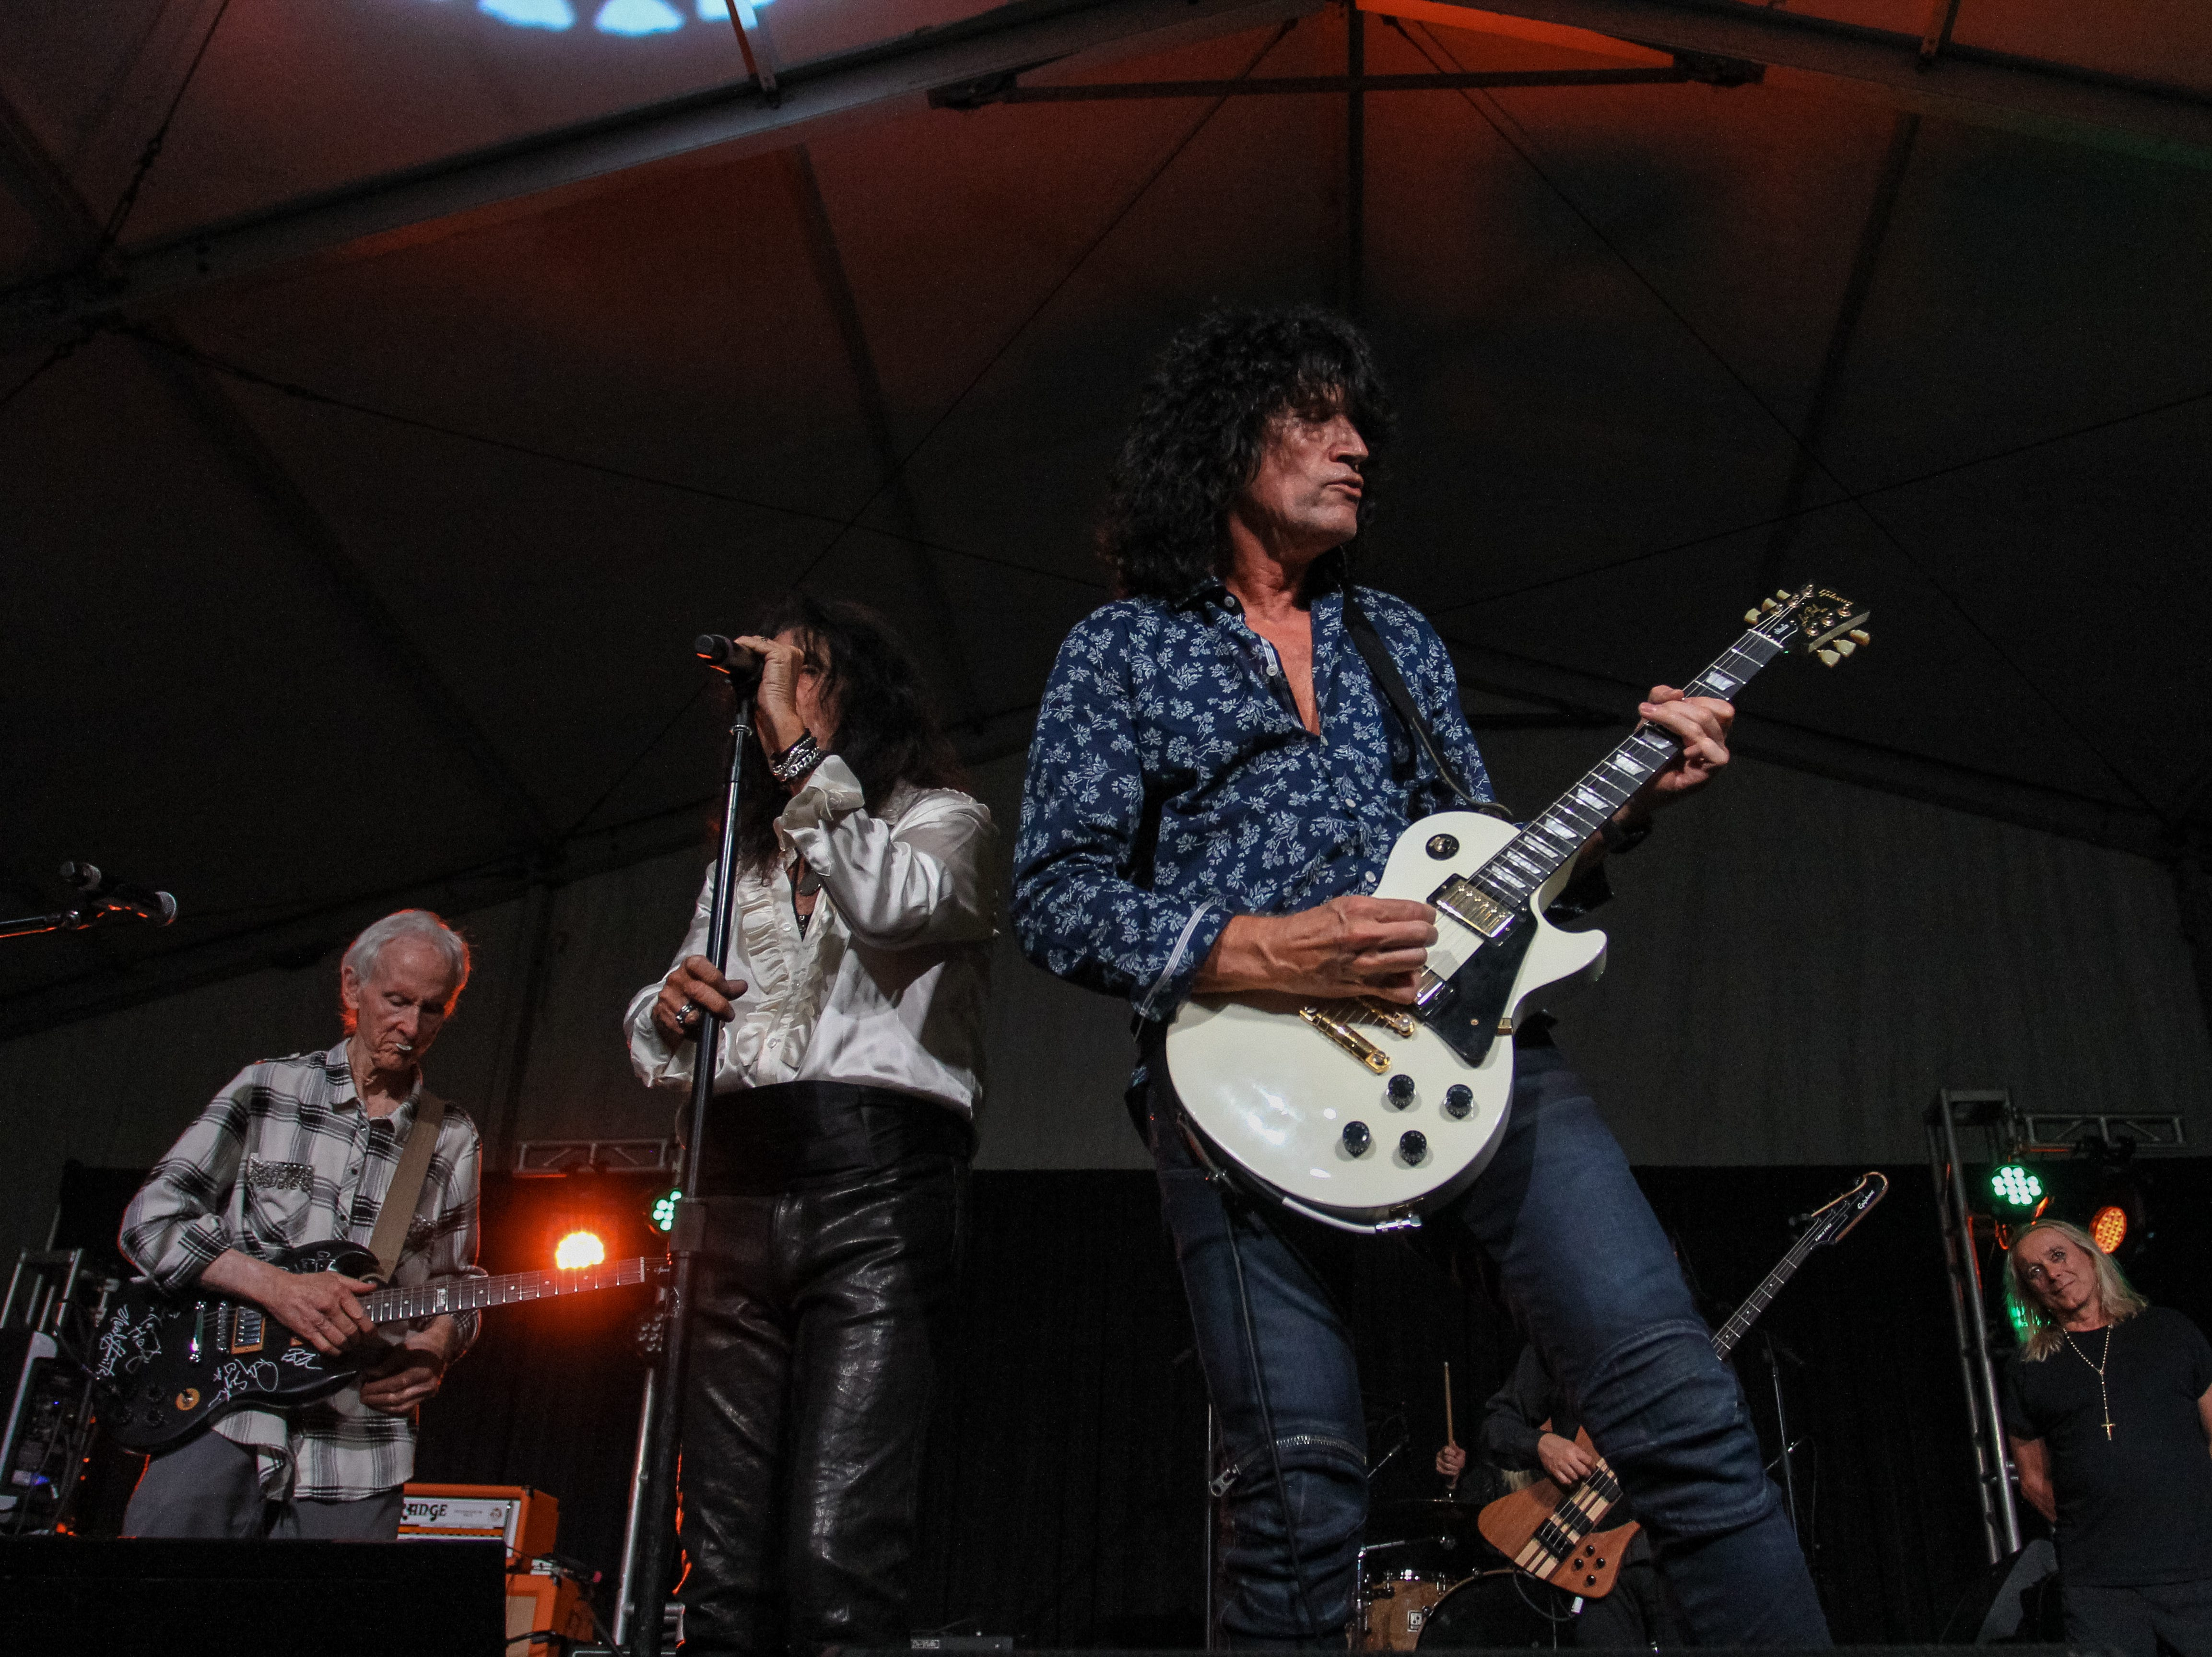 Alice Cooper, Tommy Thayer of Kiss, Robby Krieger of The Doors and Robin Zander of Cheap Trick perform at Alice Cooper's Rock & Roll Fundraising Bash at the Las Sendas Golf Club in Mesa on April 27, 2019.